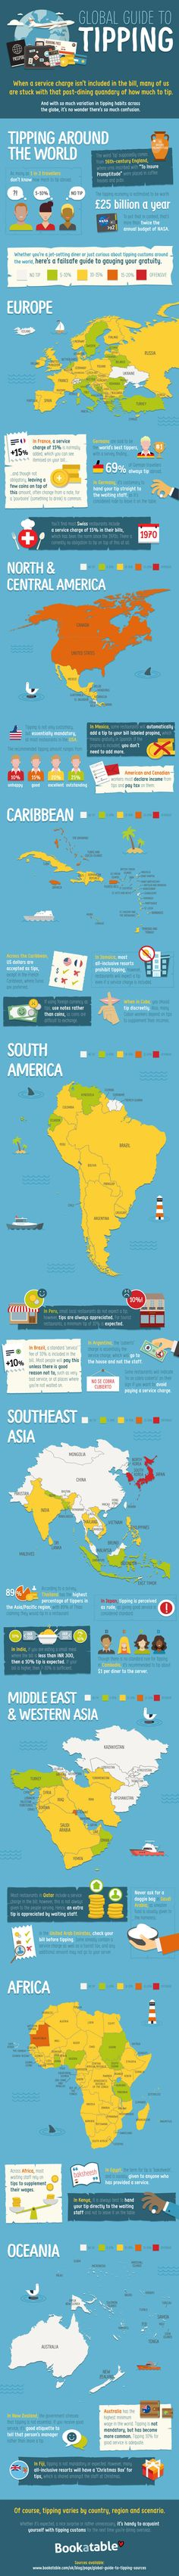 Global Guide To Tipping #infographic #Travel #Tipping